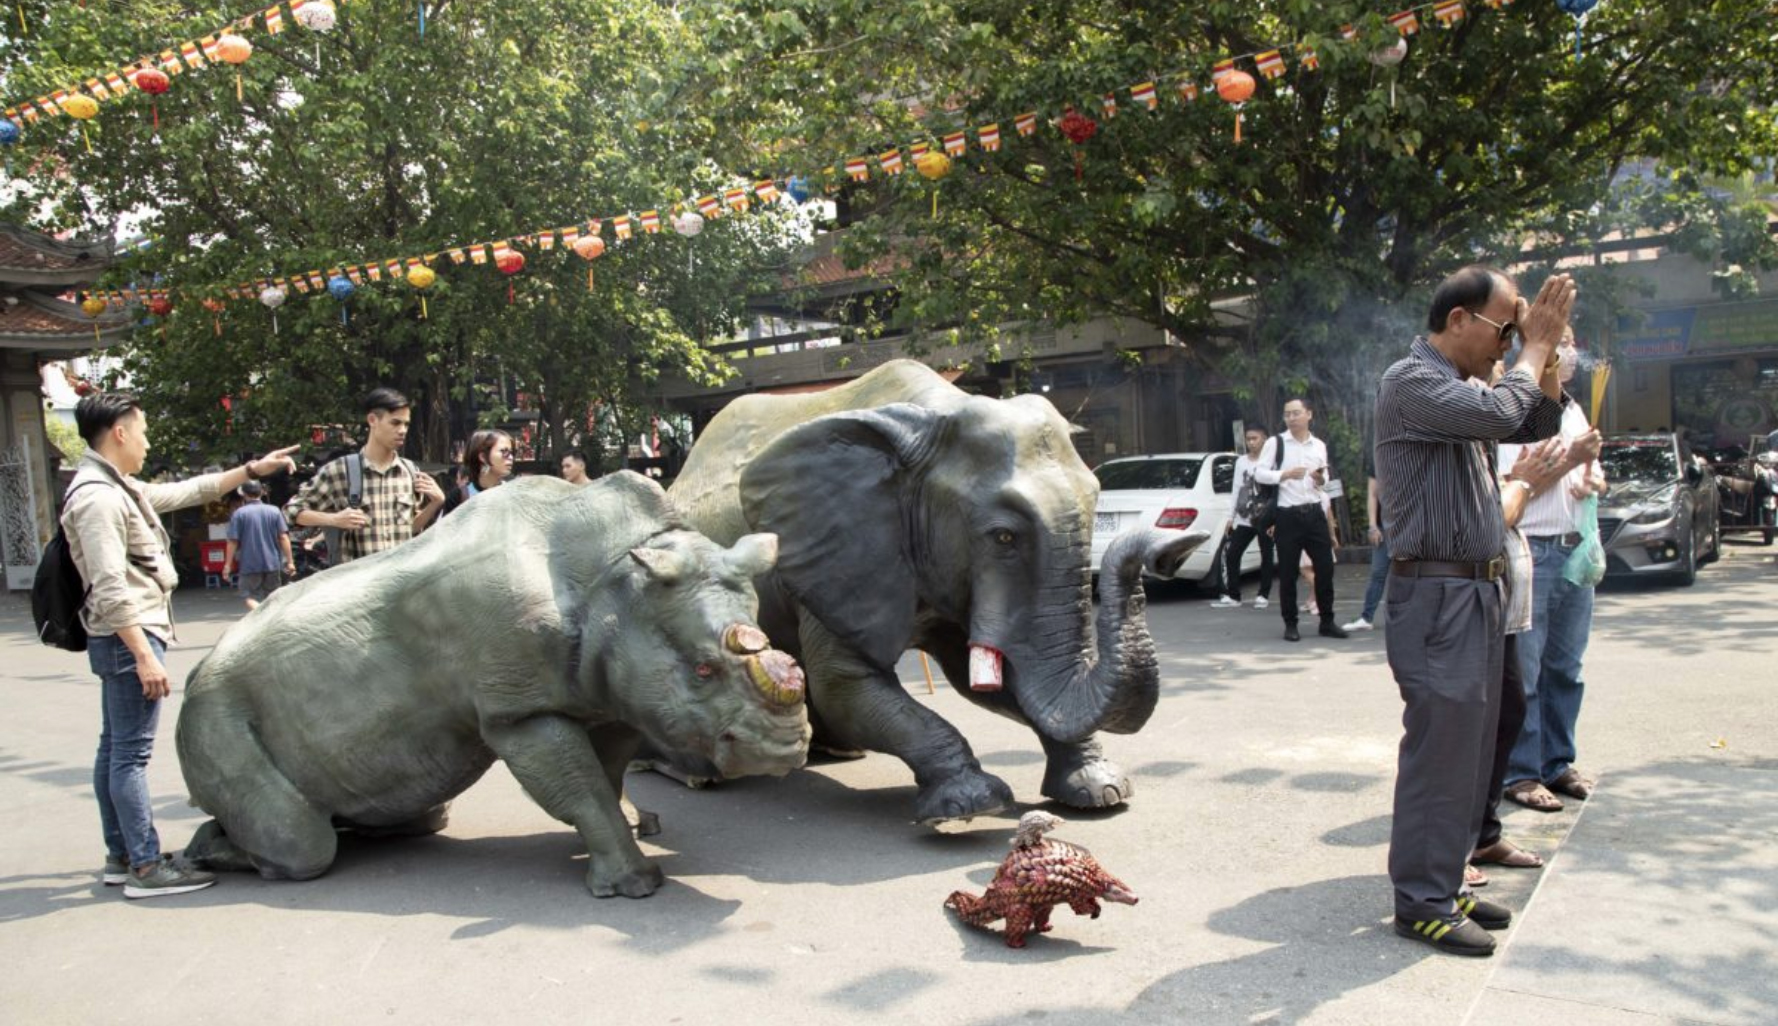 NEW CAMPAIGN URGES VIETNAMESE TO STOP BUYING WILDLIFE PRODUCTS ON EVE OF LUNAR NEW YEAR